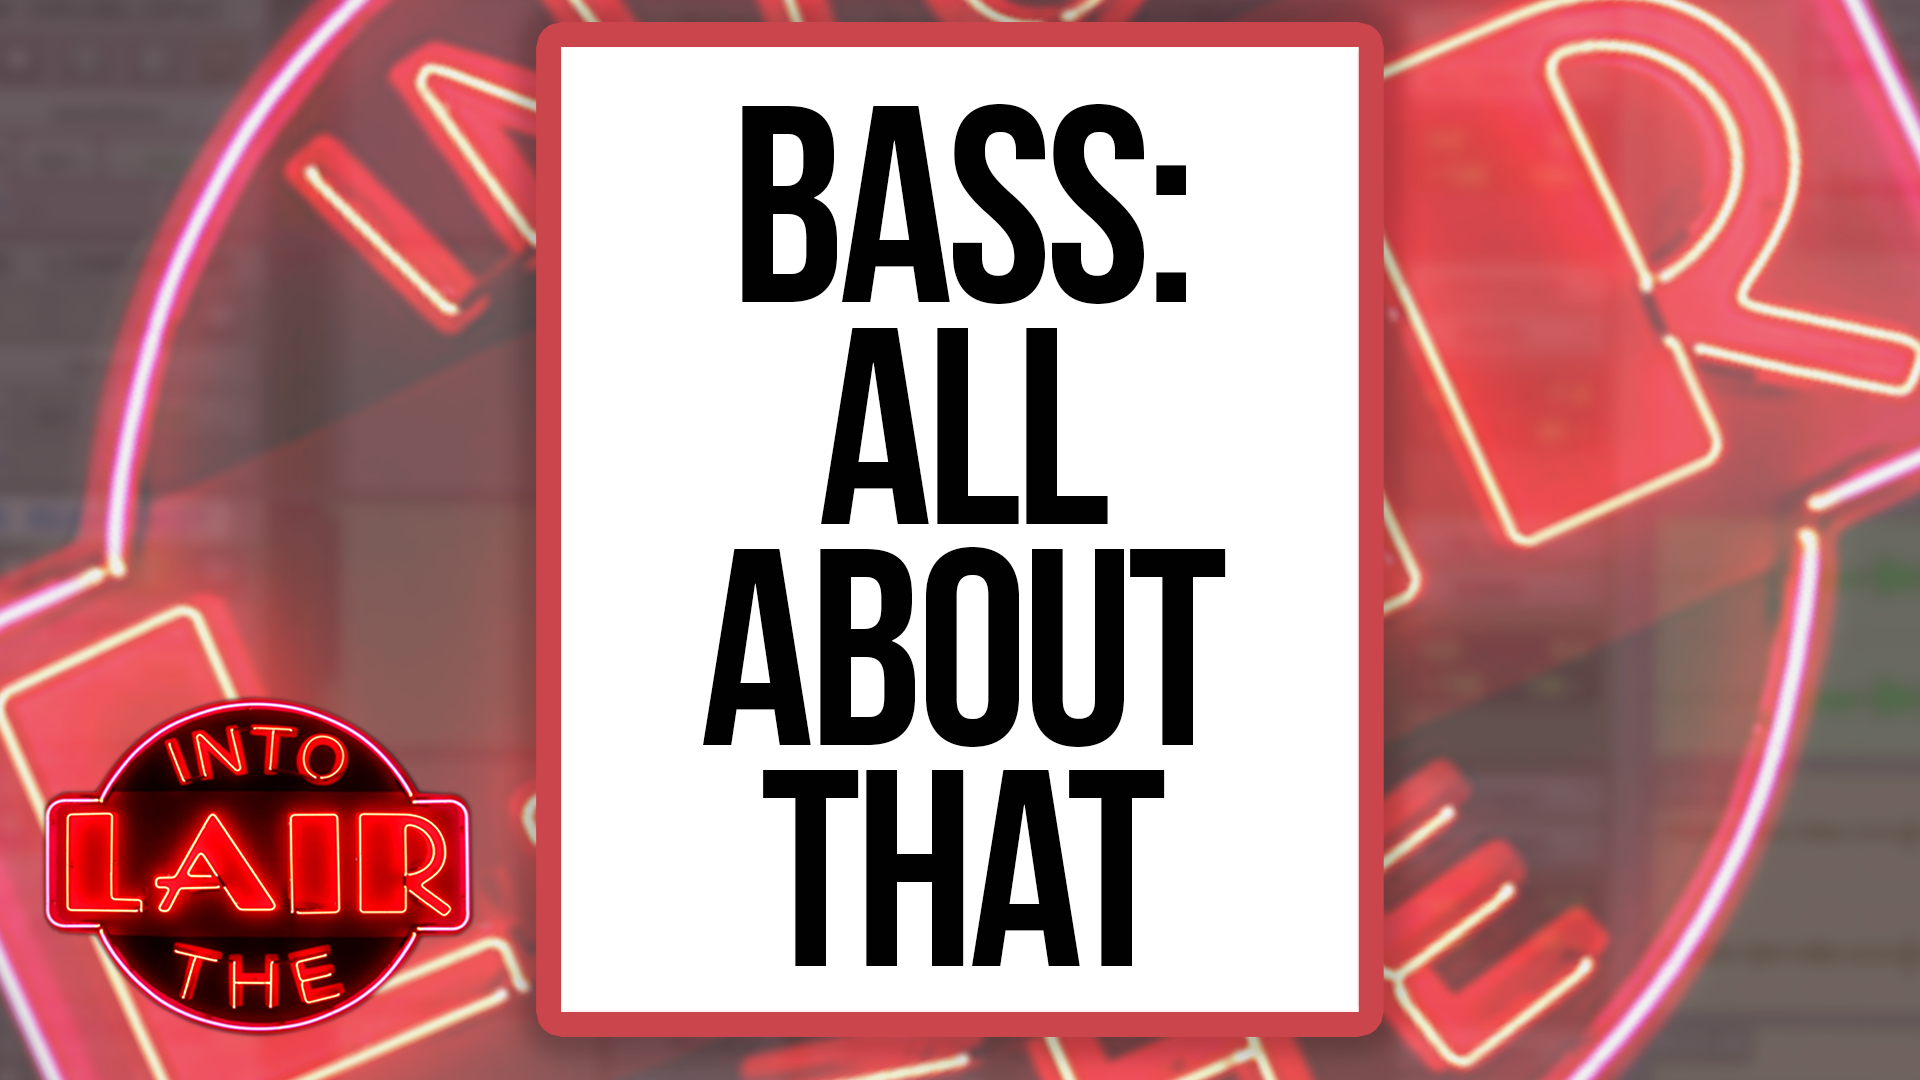 Bass: All About That